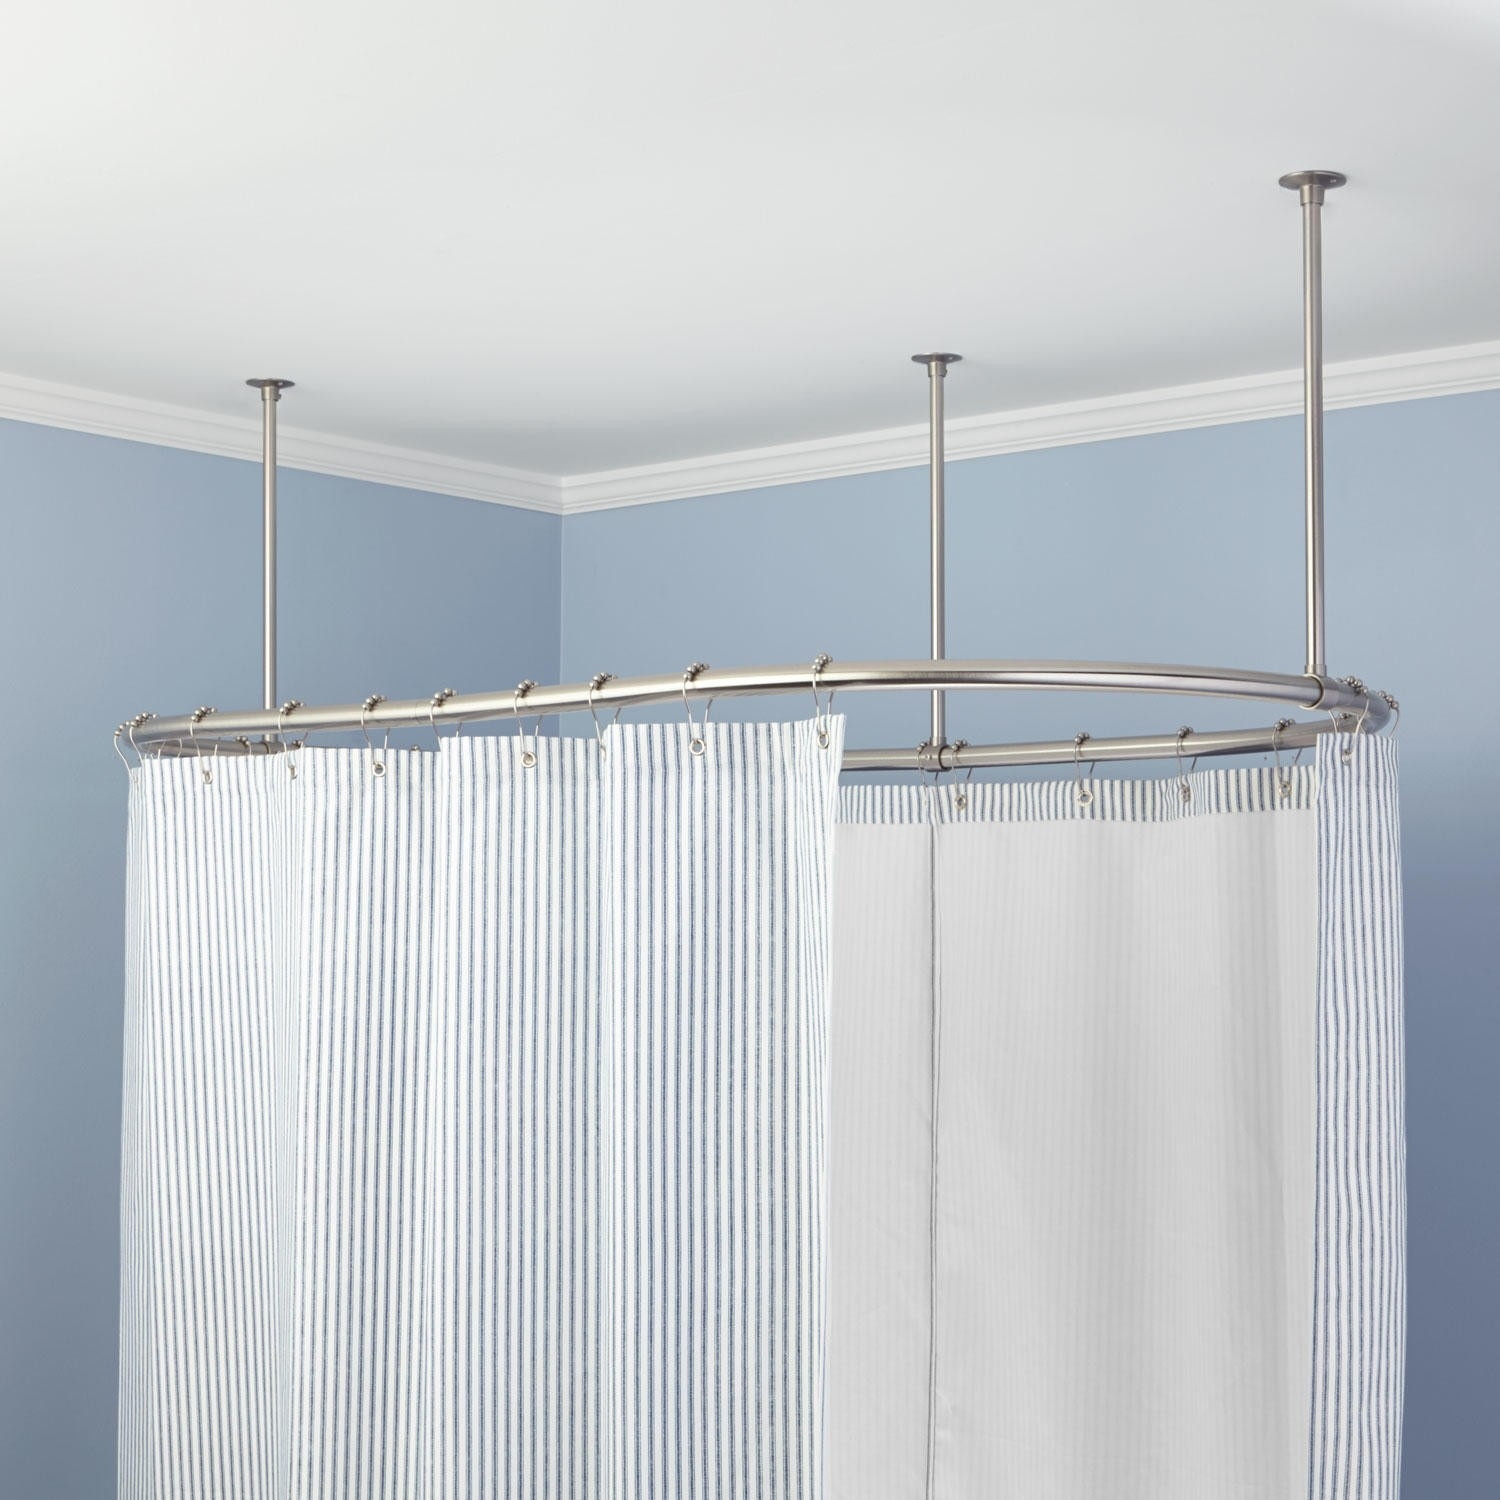 Shower Curtain Rod Round Tub Curtain Rods And Window Curtains pertaining to dimensions 1500 X 1500